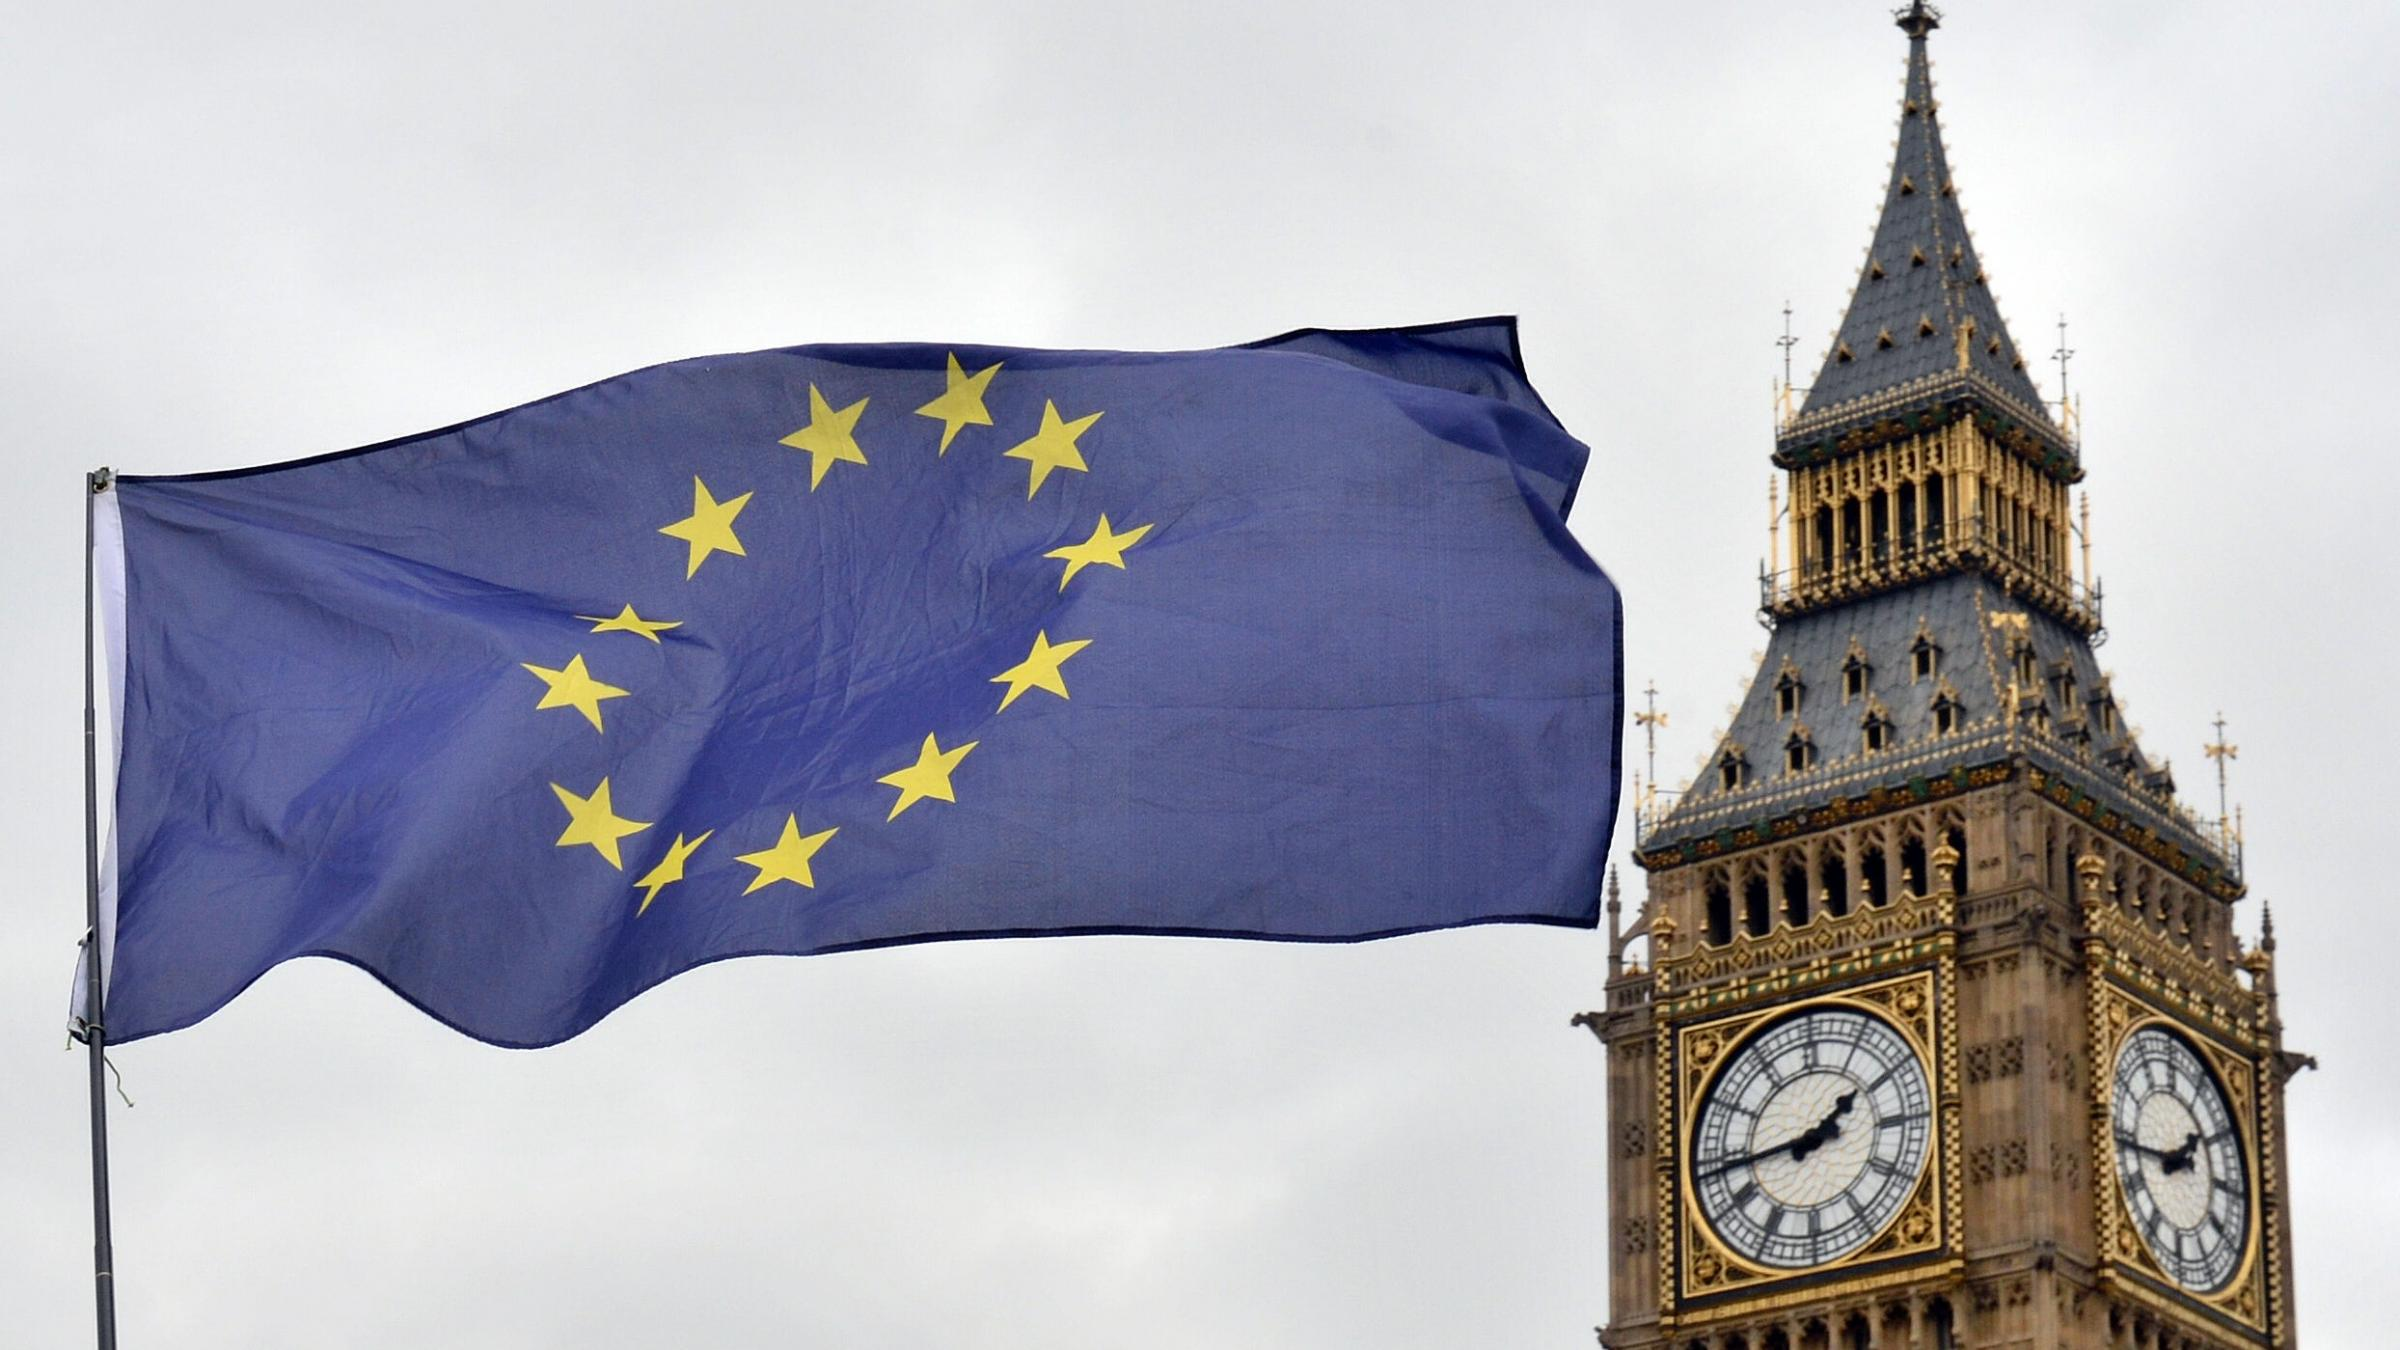 Trade deals not on agenda for looming Brexit talks